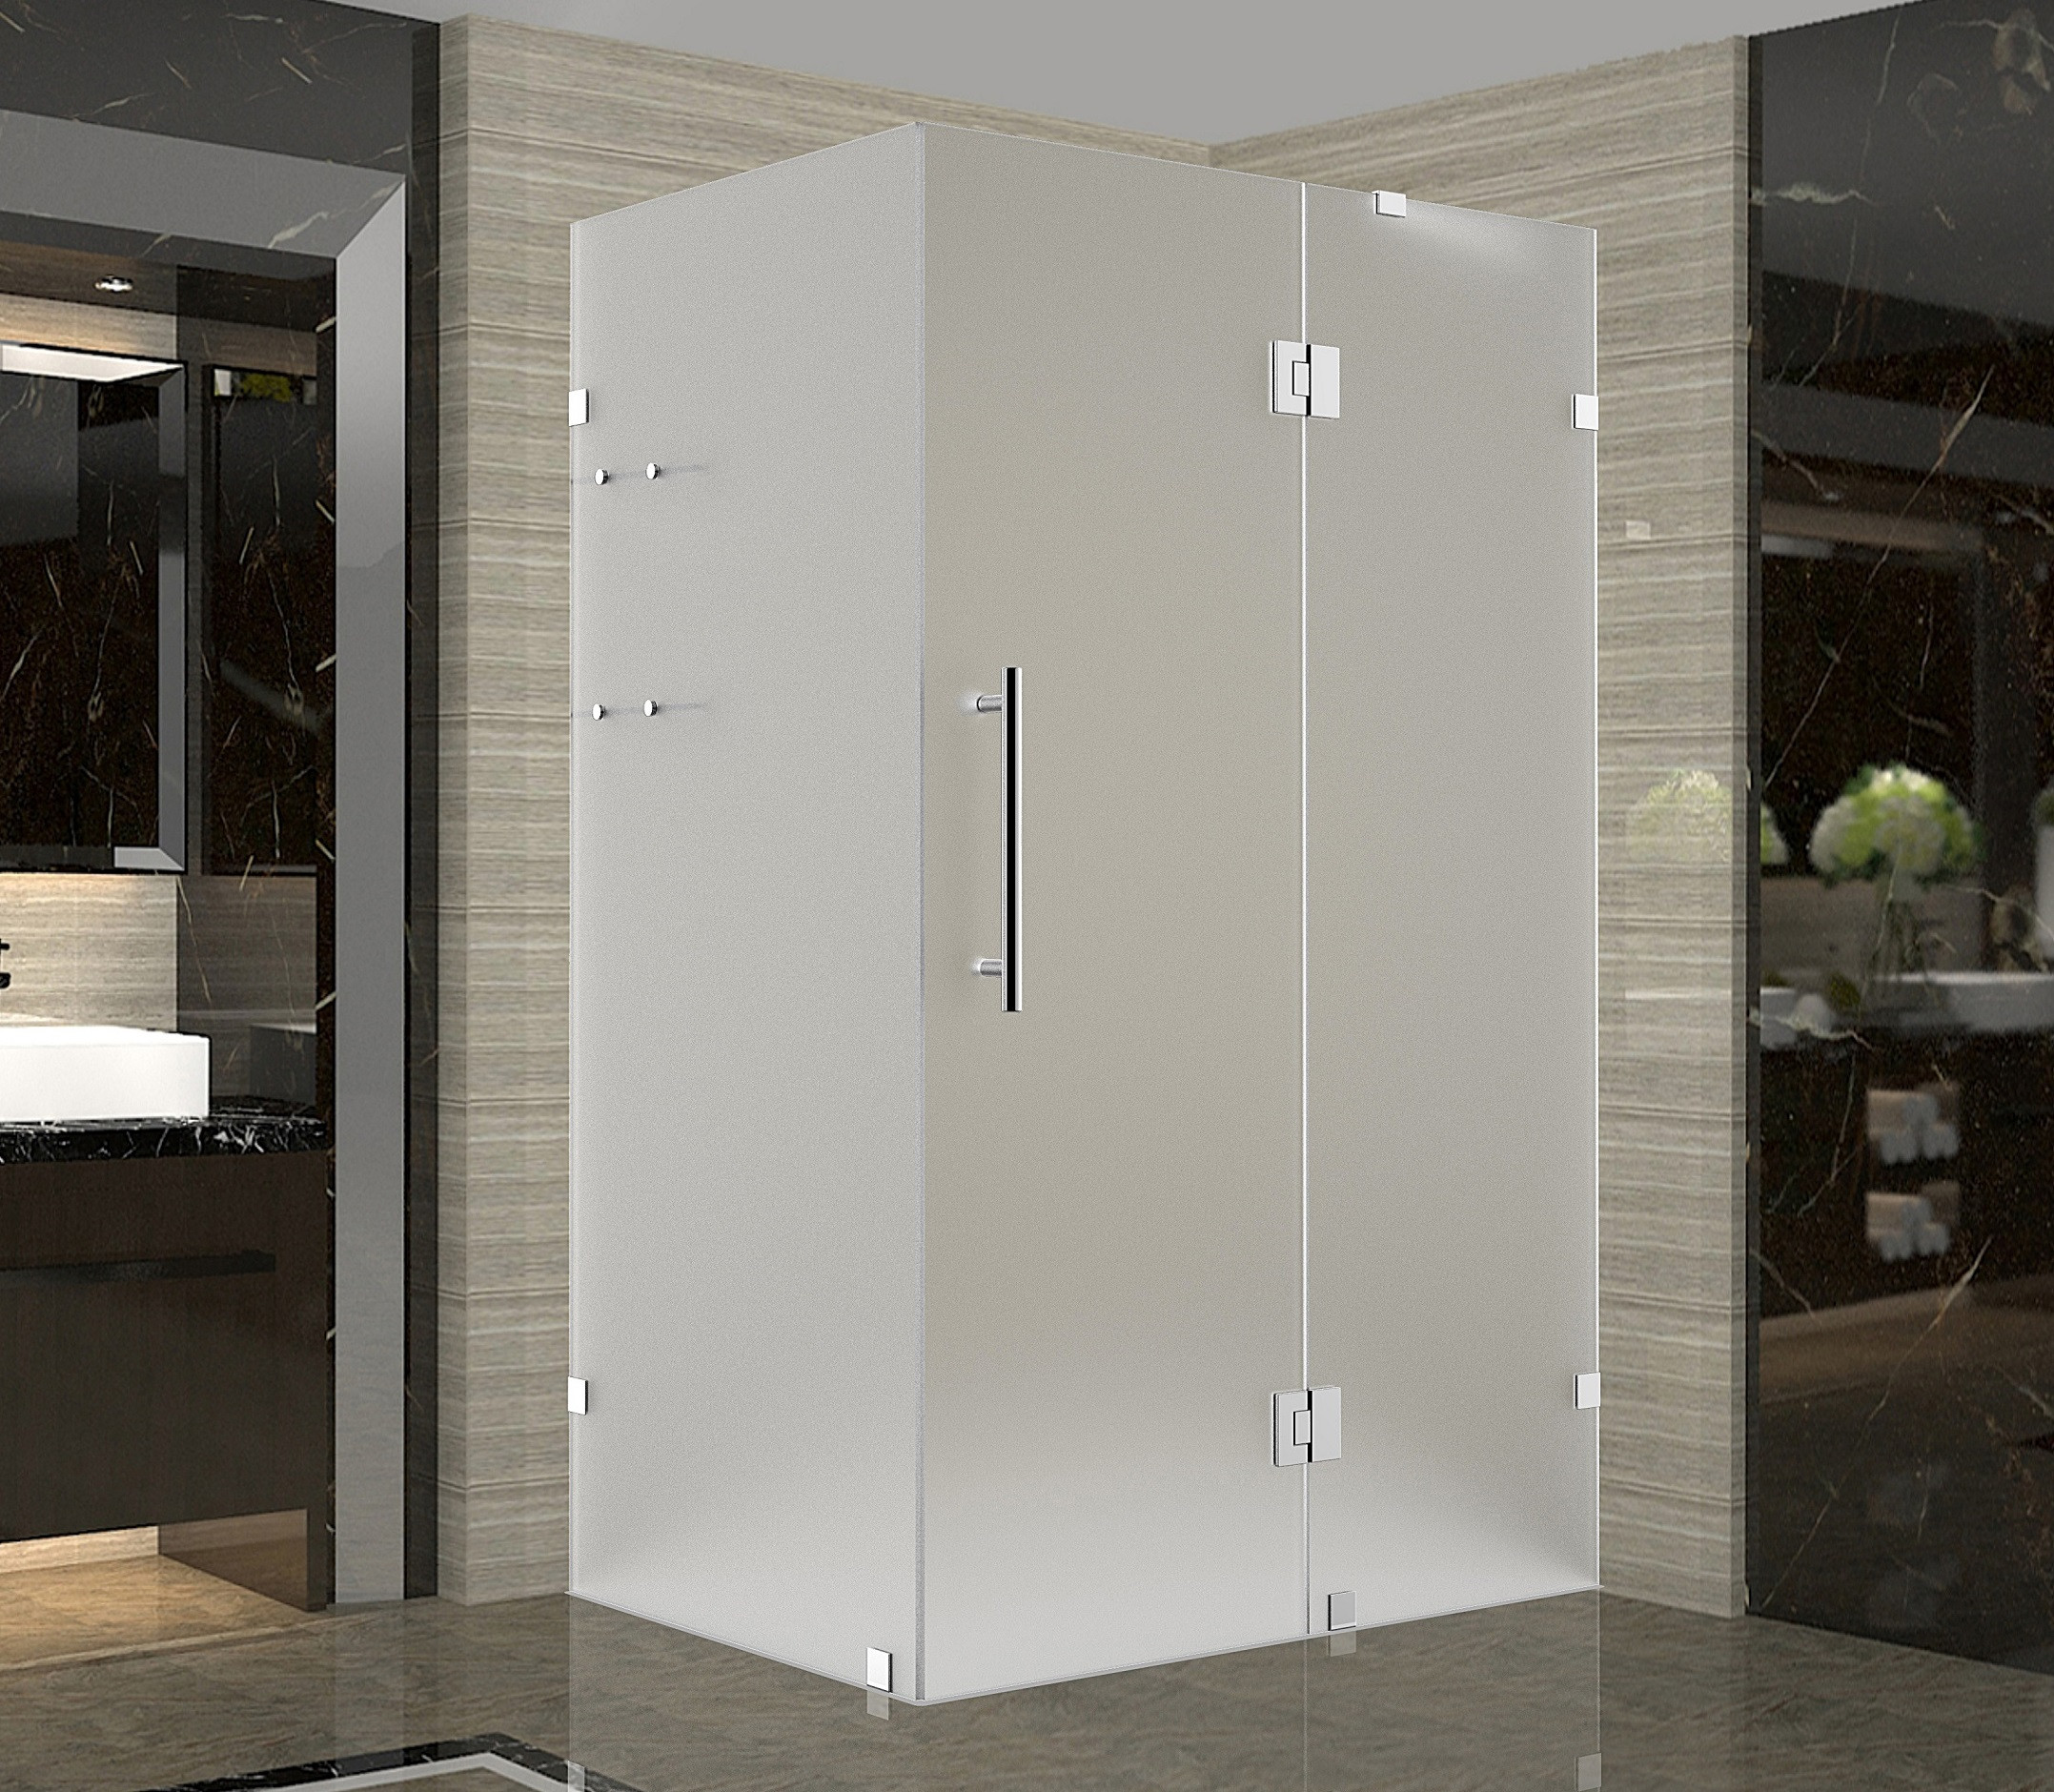 Aston Global SEN992F-CH-3330-10 Chrome Completely Frameless Frosted Shower Enclosure with Shelves